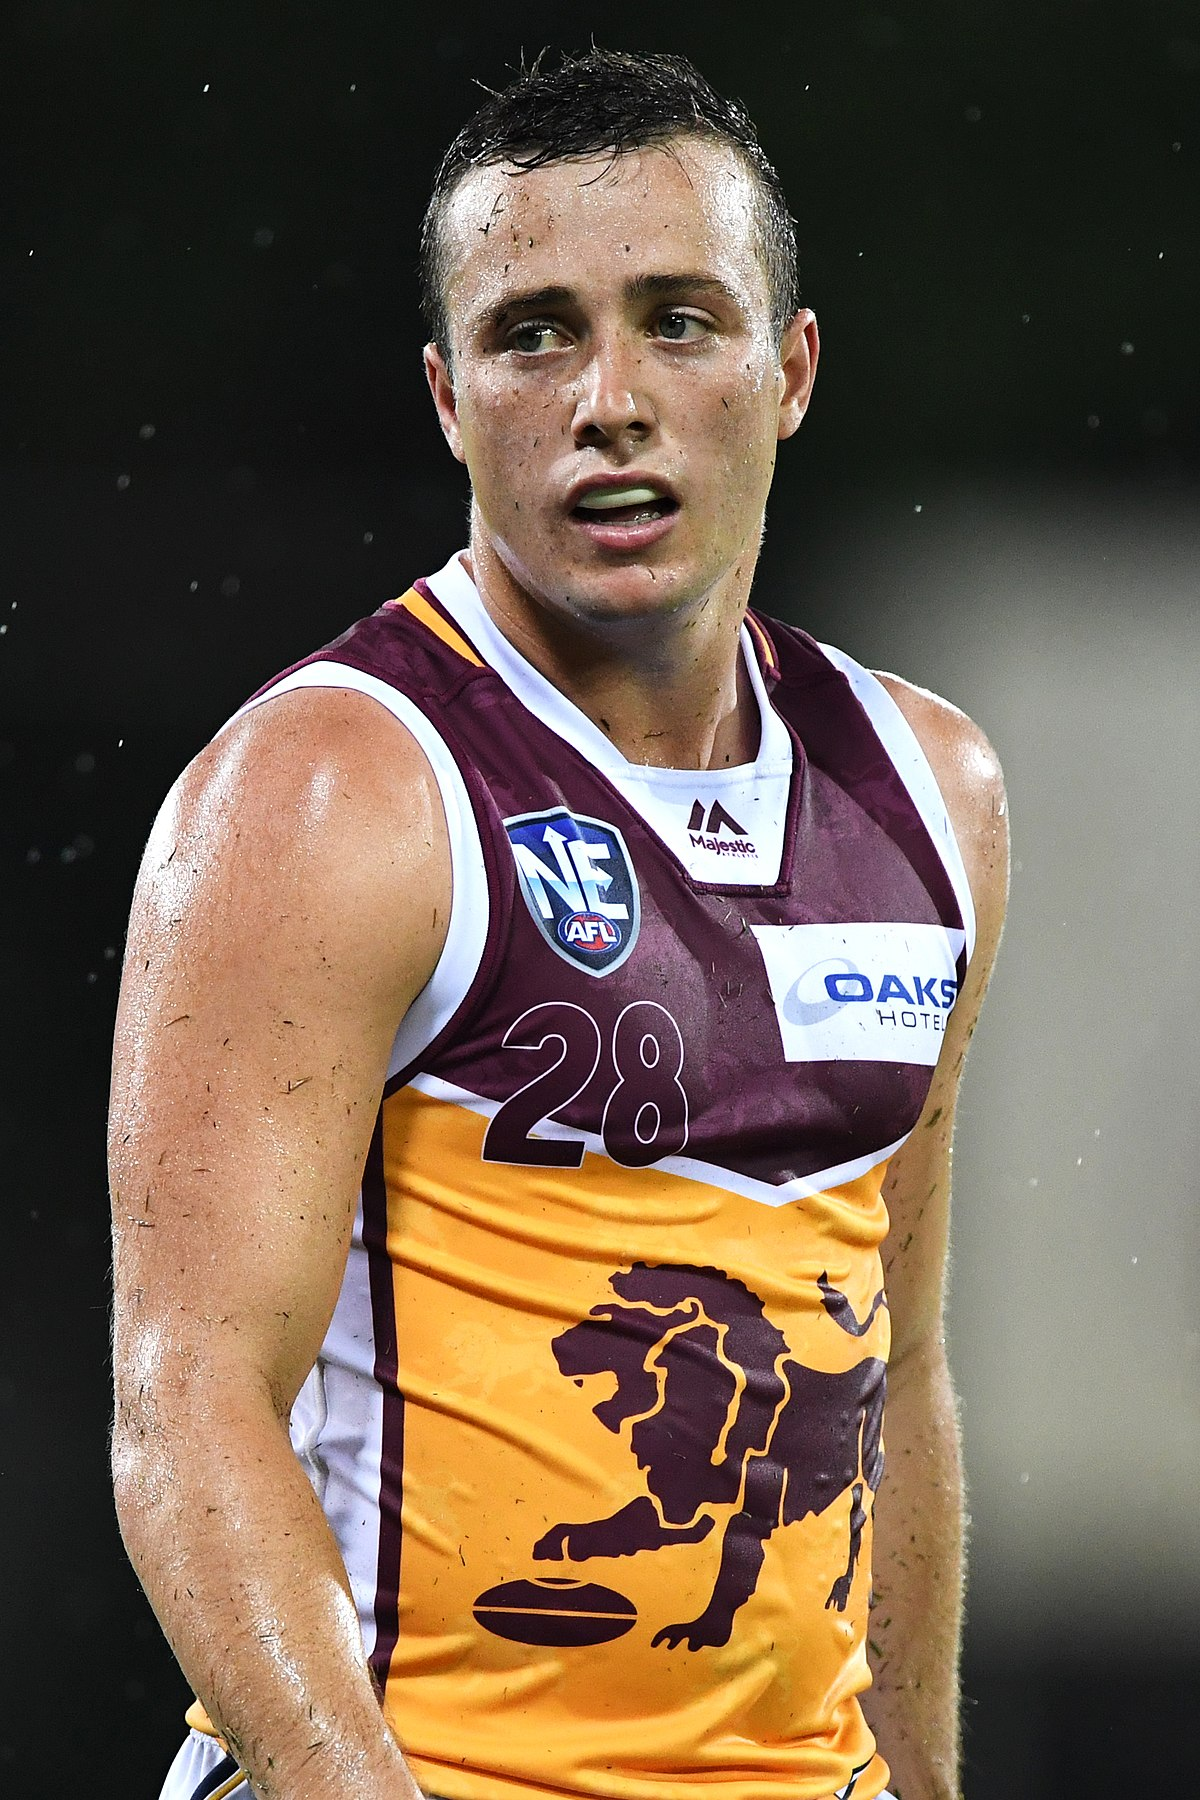 Ft Lewis College >> Lewis Taylor (Australian footballer) - Wikipedia